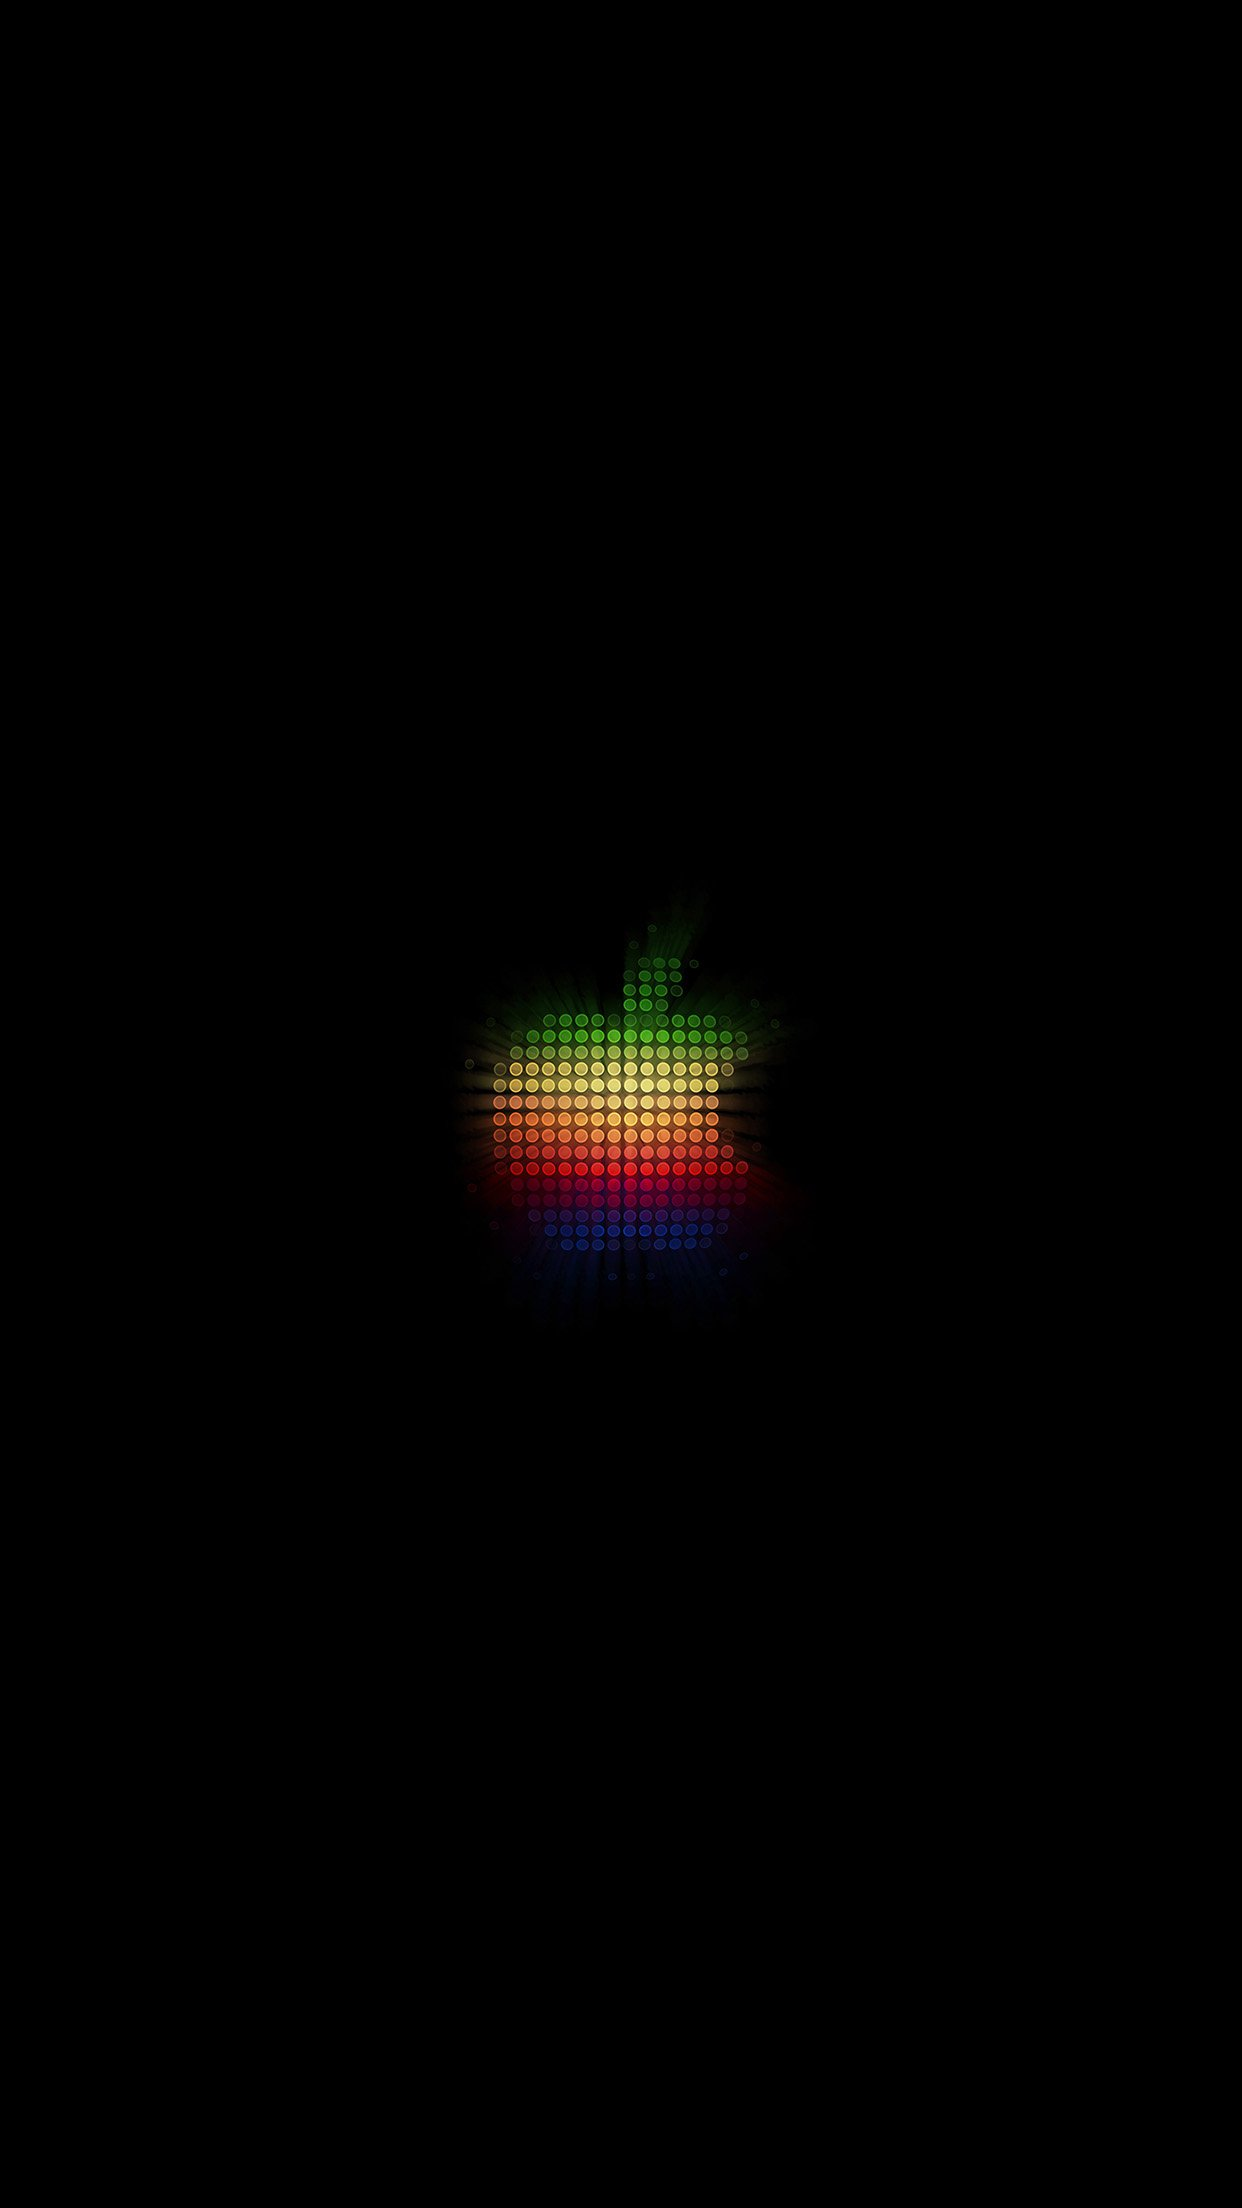 Logo Apple Rainbow Pixel Art Illustration Android Wallpaper